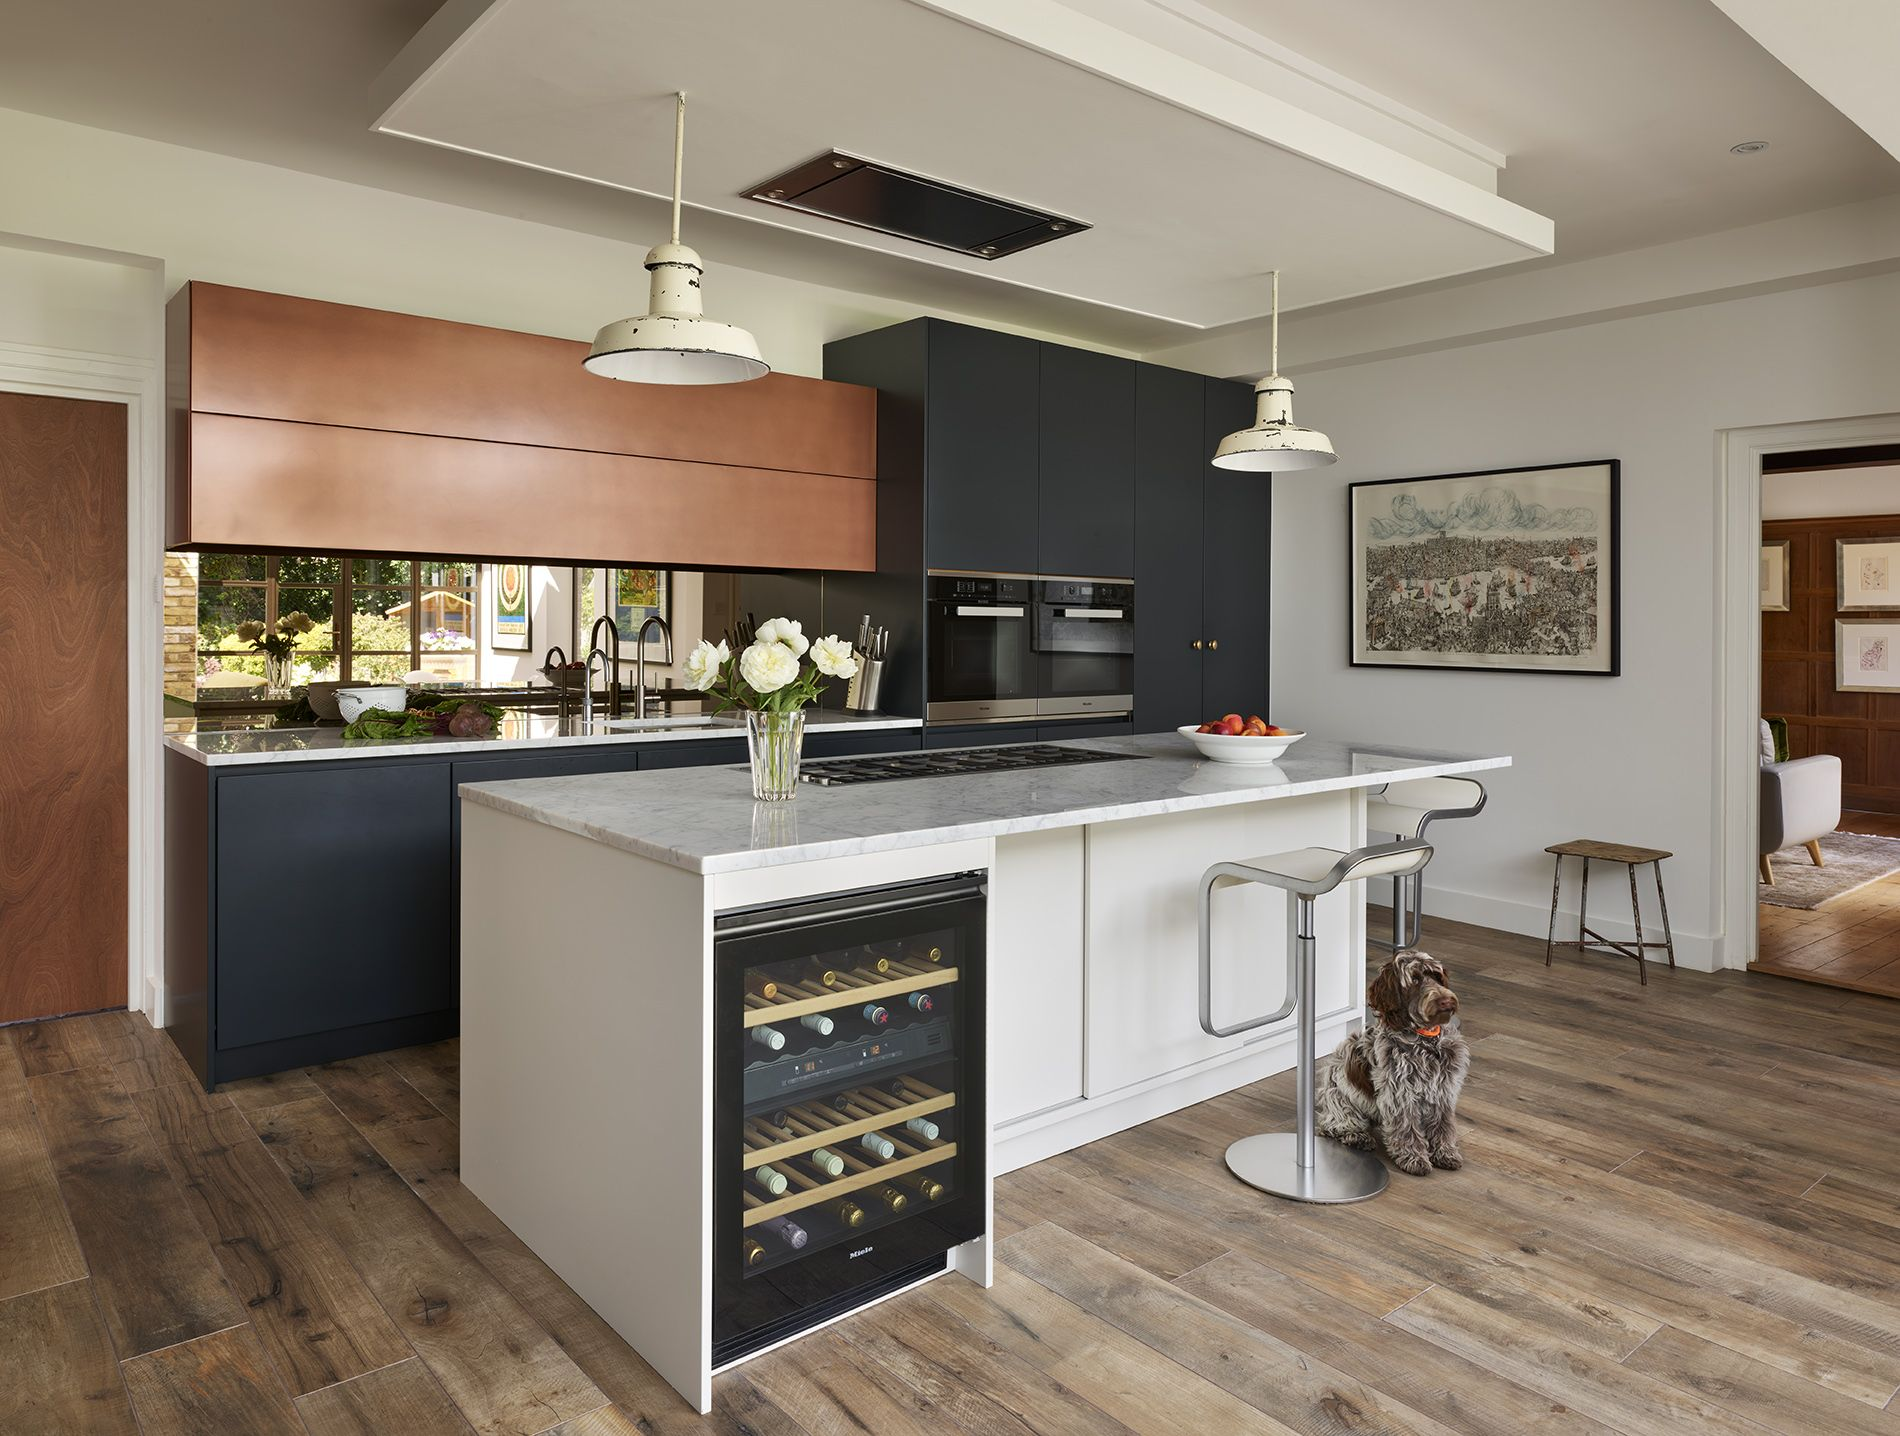 Pin by jaylyn Мiсhaеle on nic pinterest bespoke kitchens